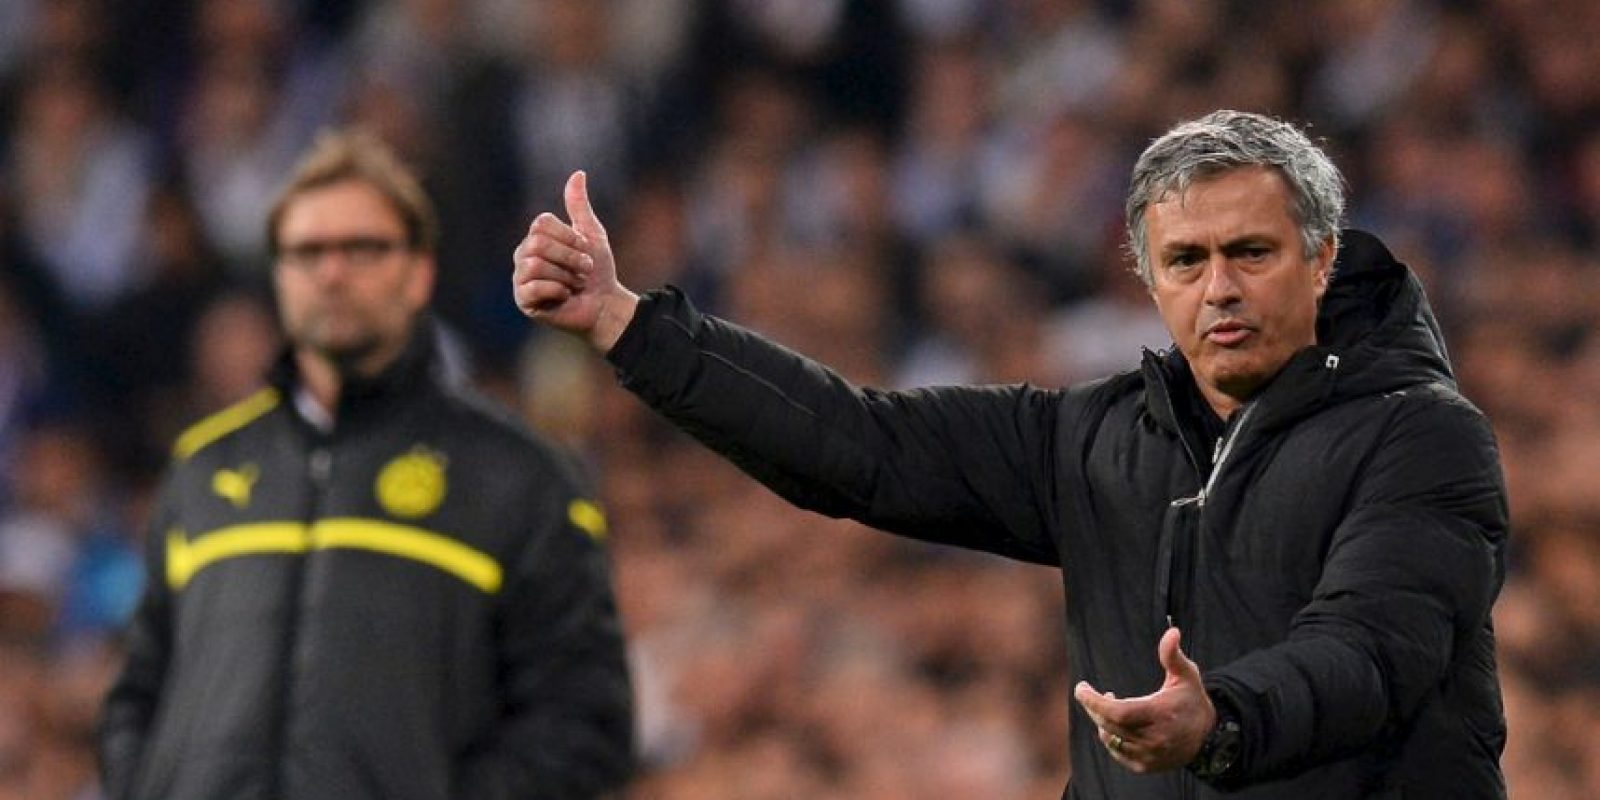 Al final de la campaña, Mourinho se marchó. Foto: Getty Images